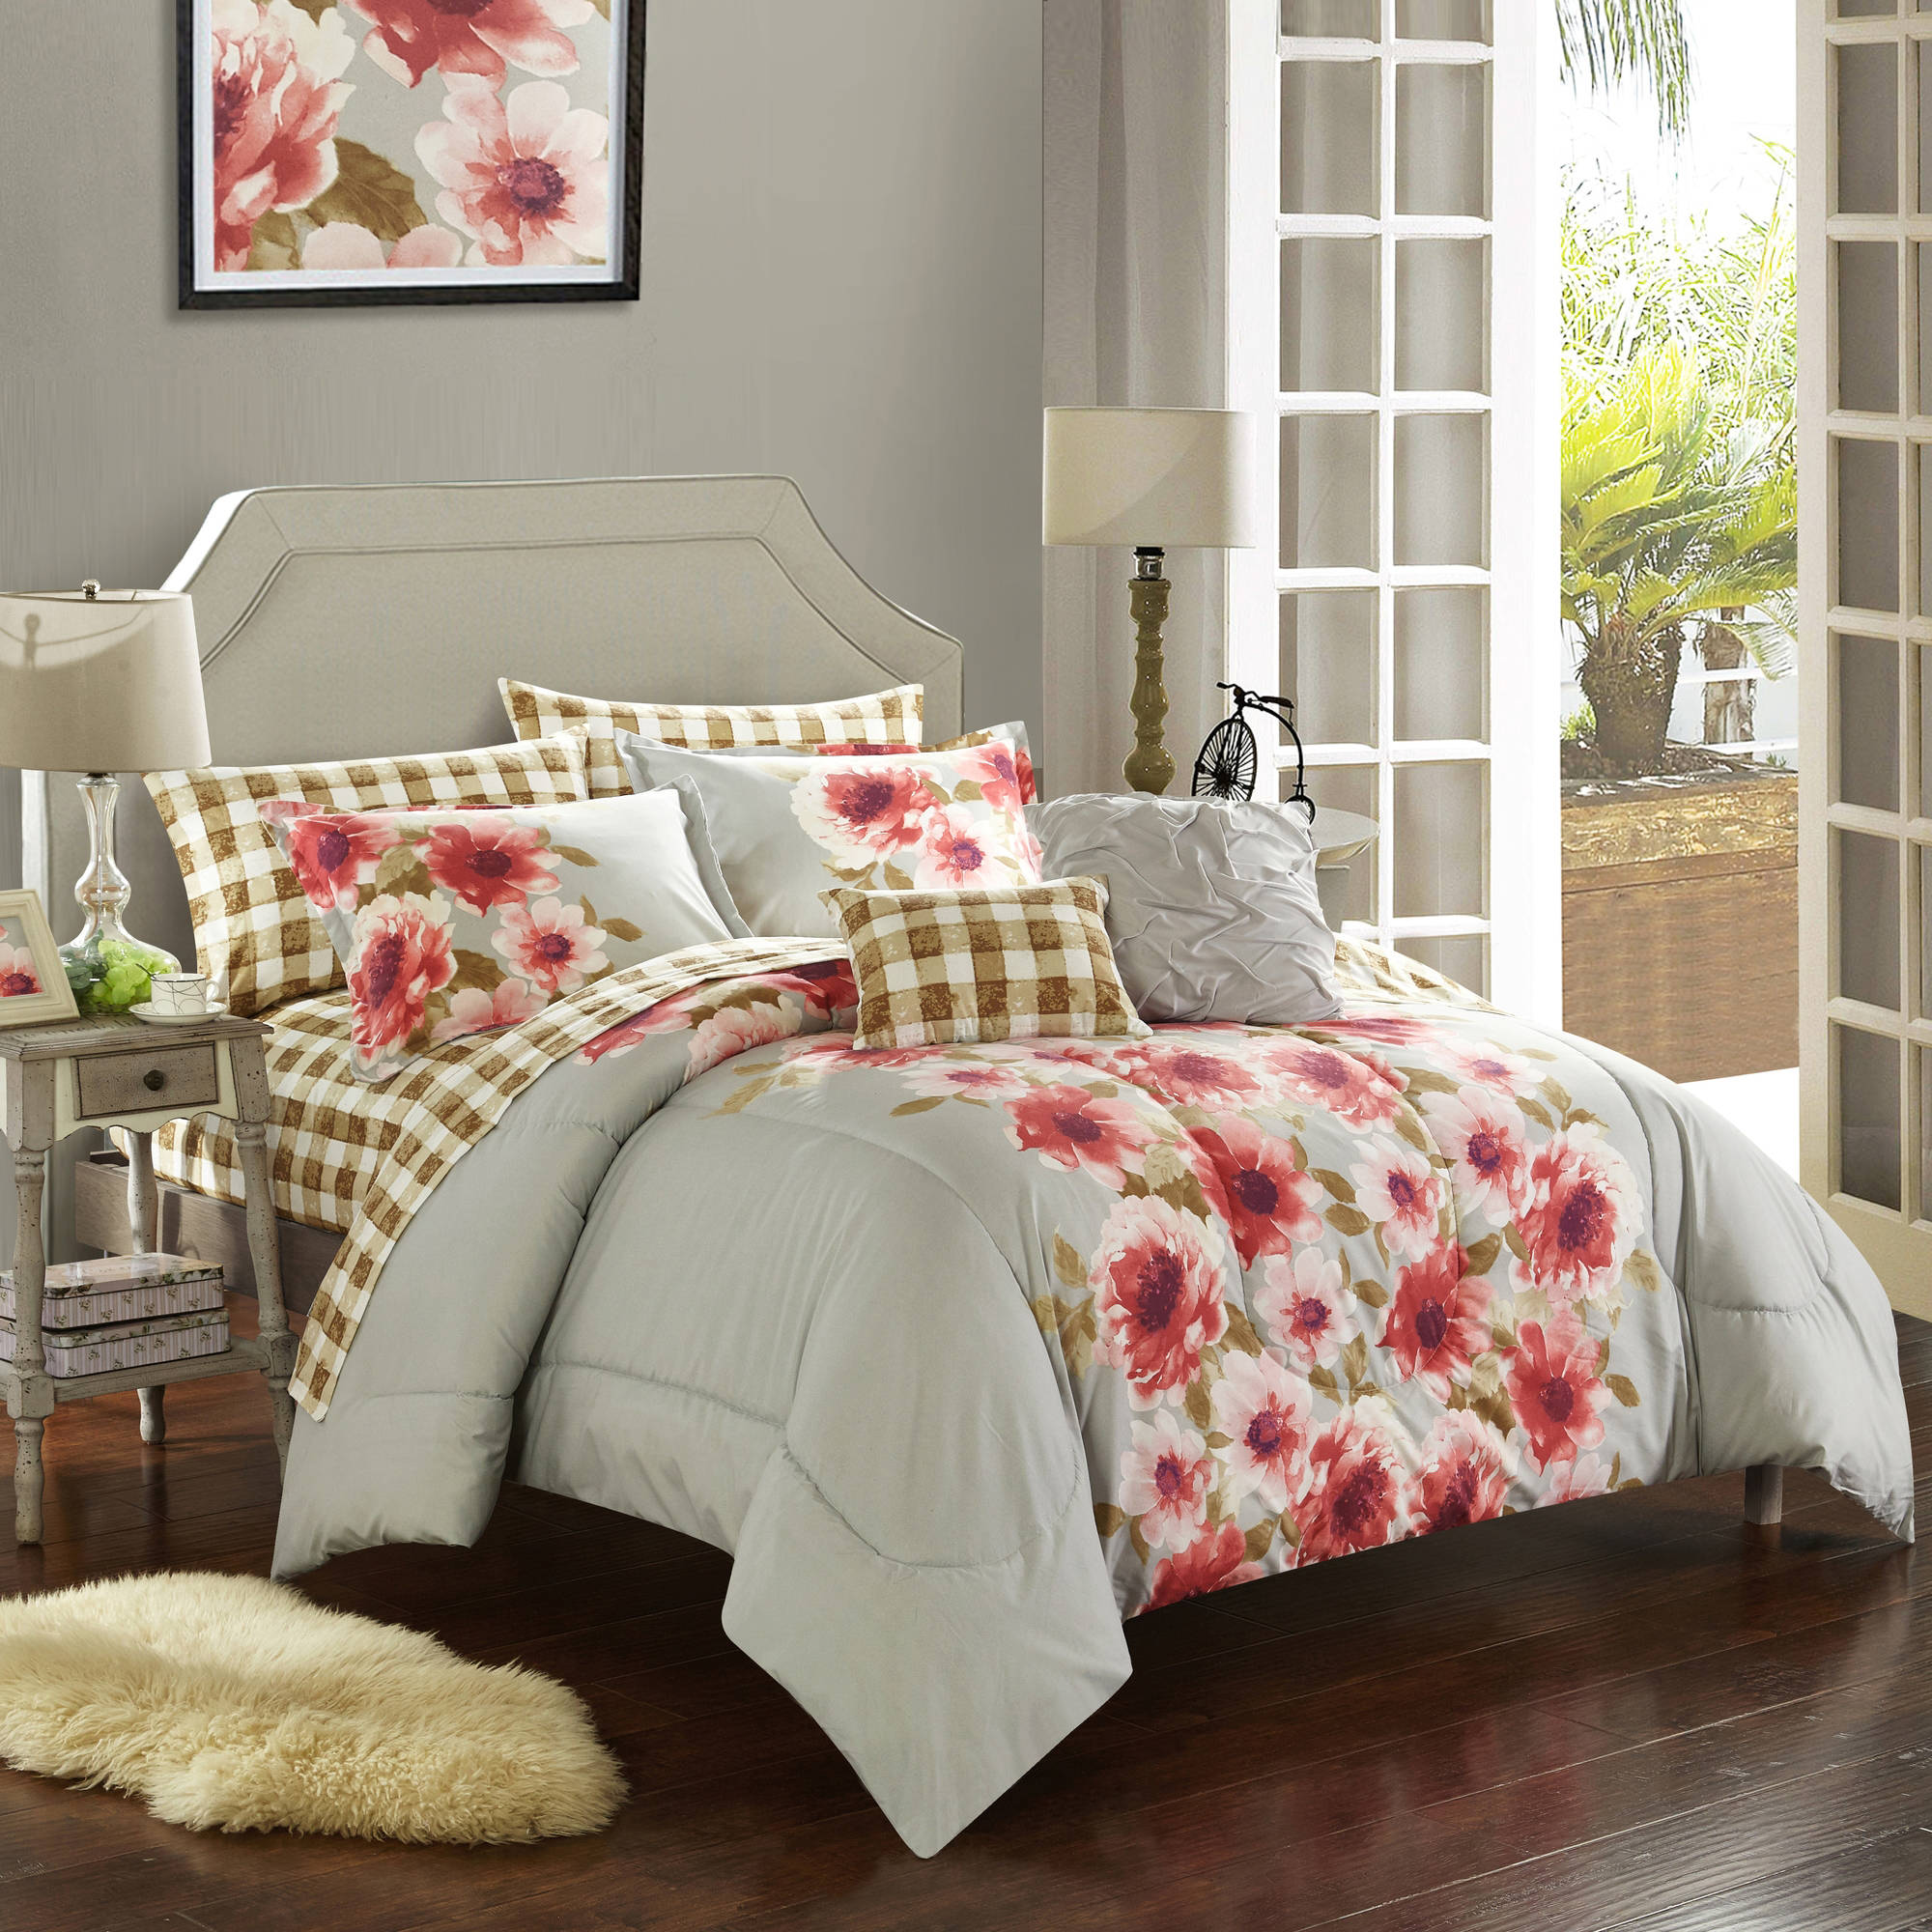 Casa Georgina Floral Bed-in-a-Bag Set